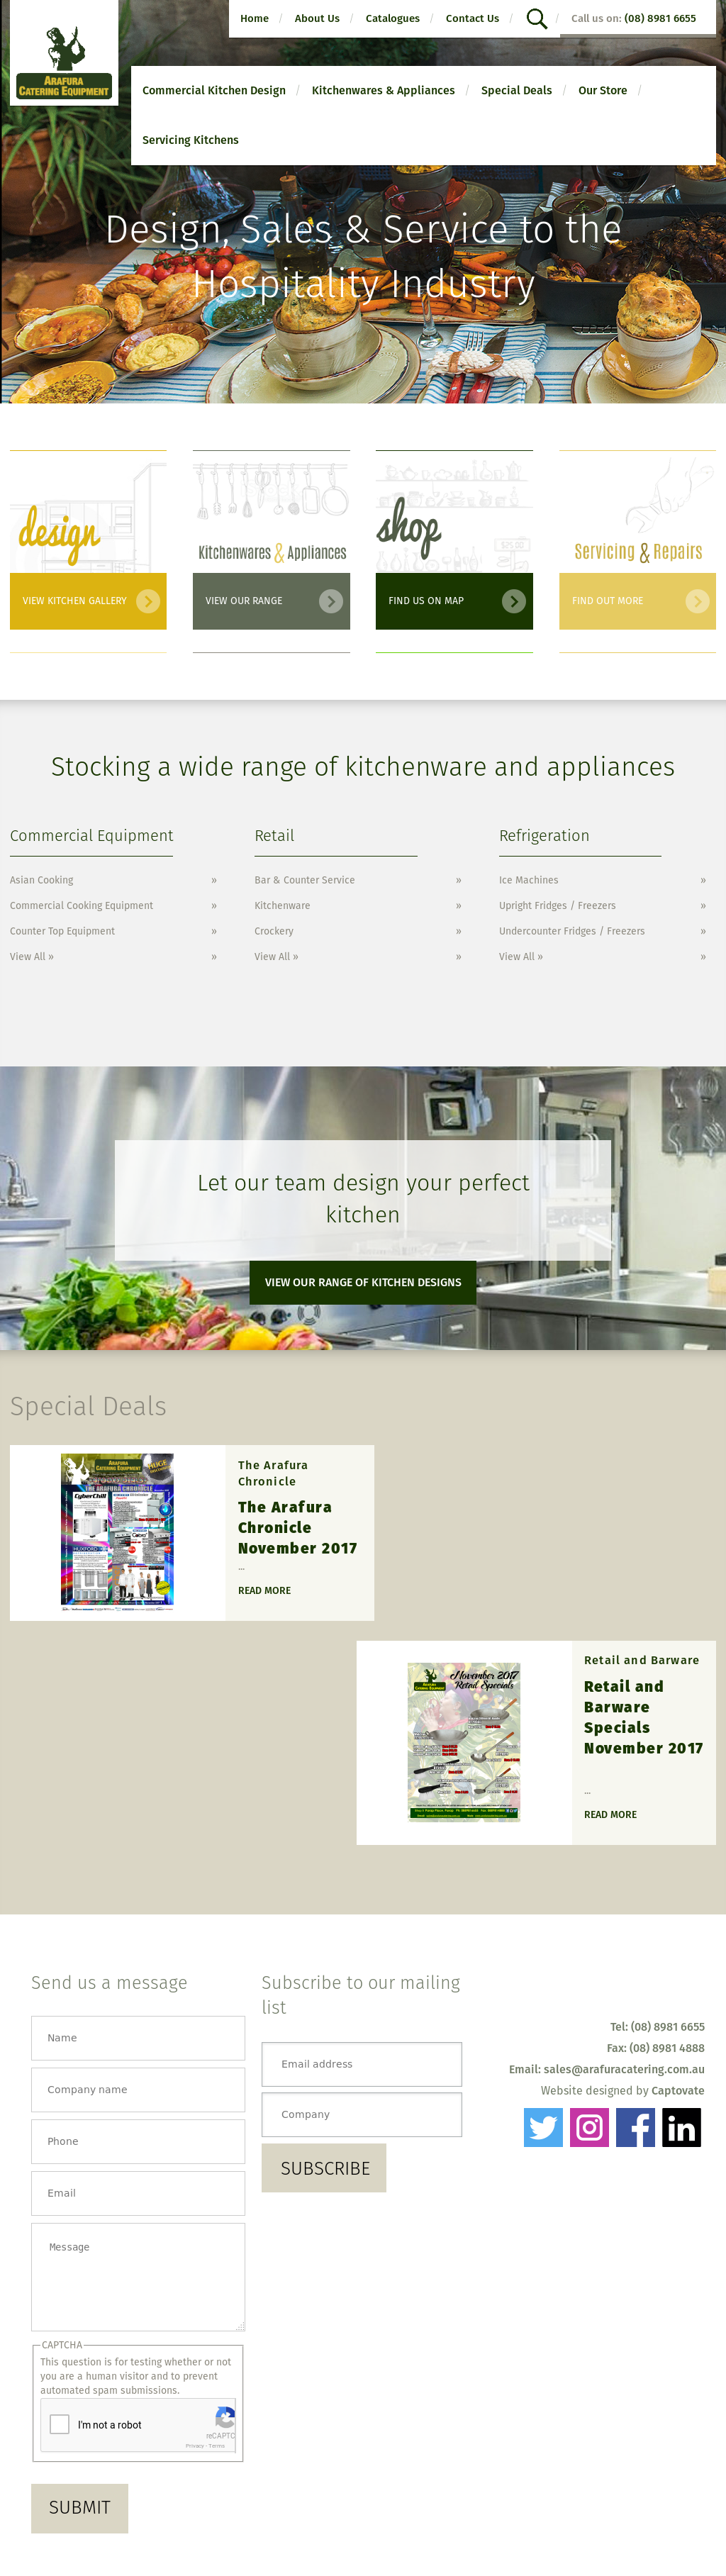 Asian Kitchen Equipment Company - Kitchen Appliances Tips And Review